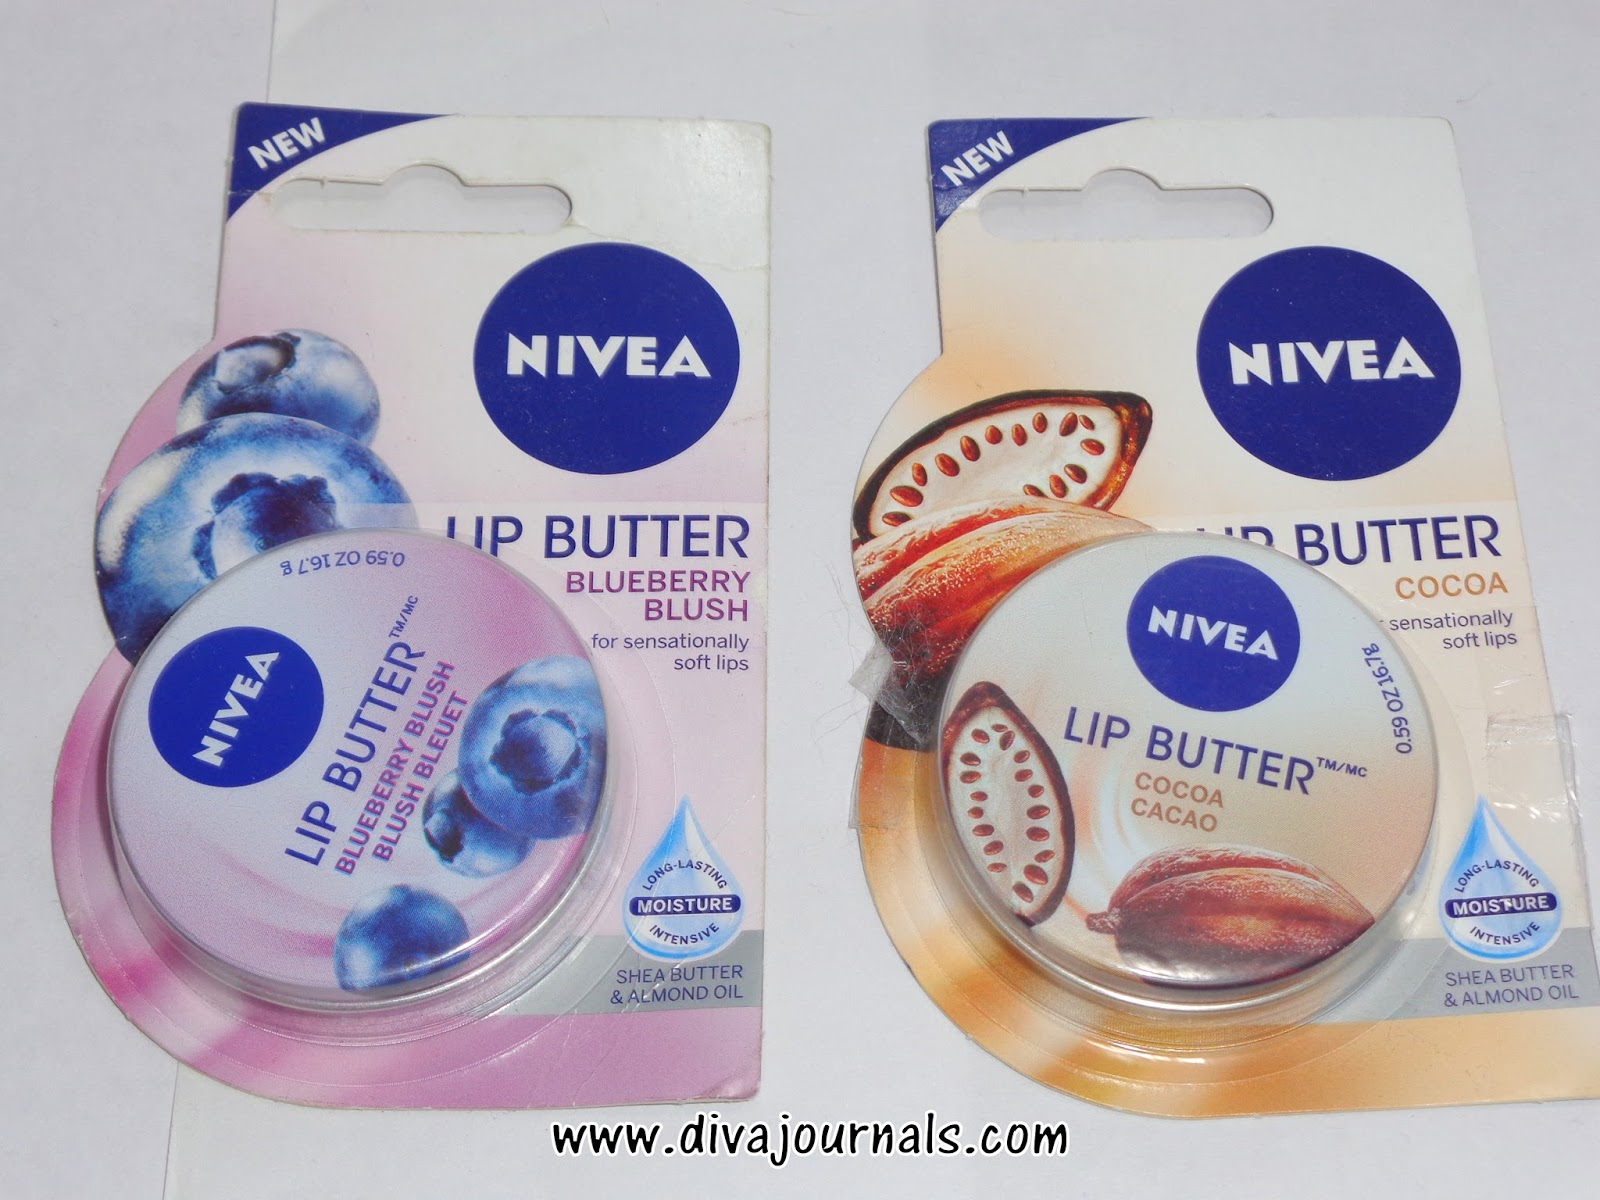 Nivea Lip Butter Blueberry Blush & Cocoa Reviews